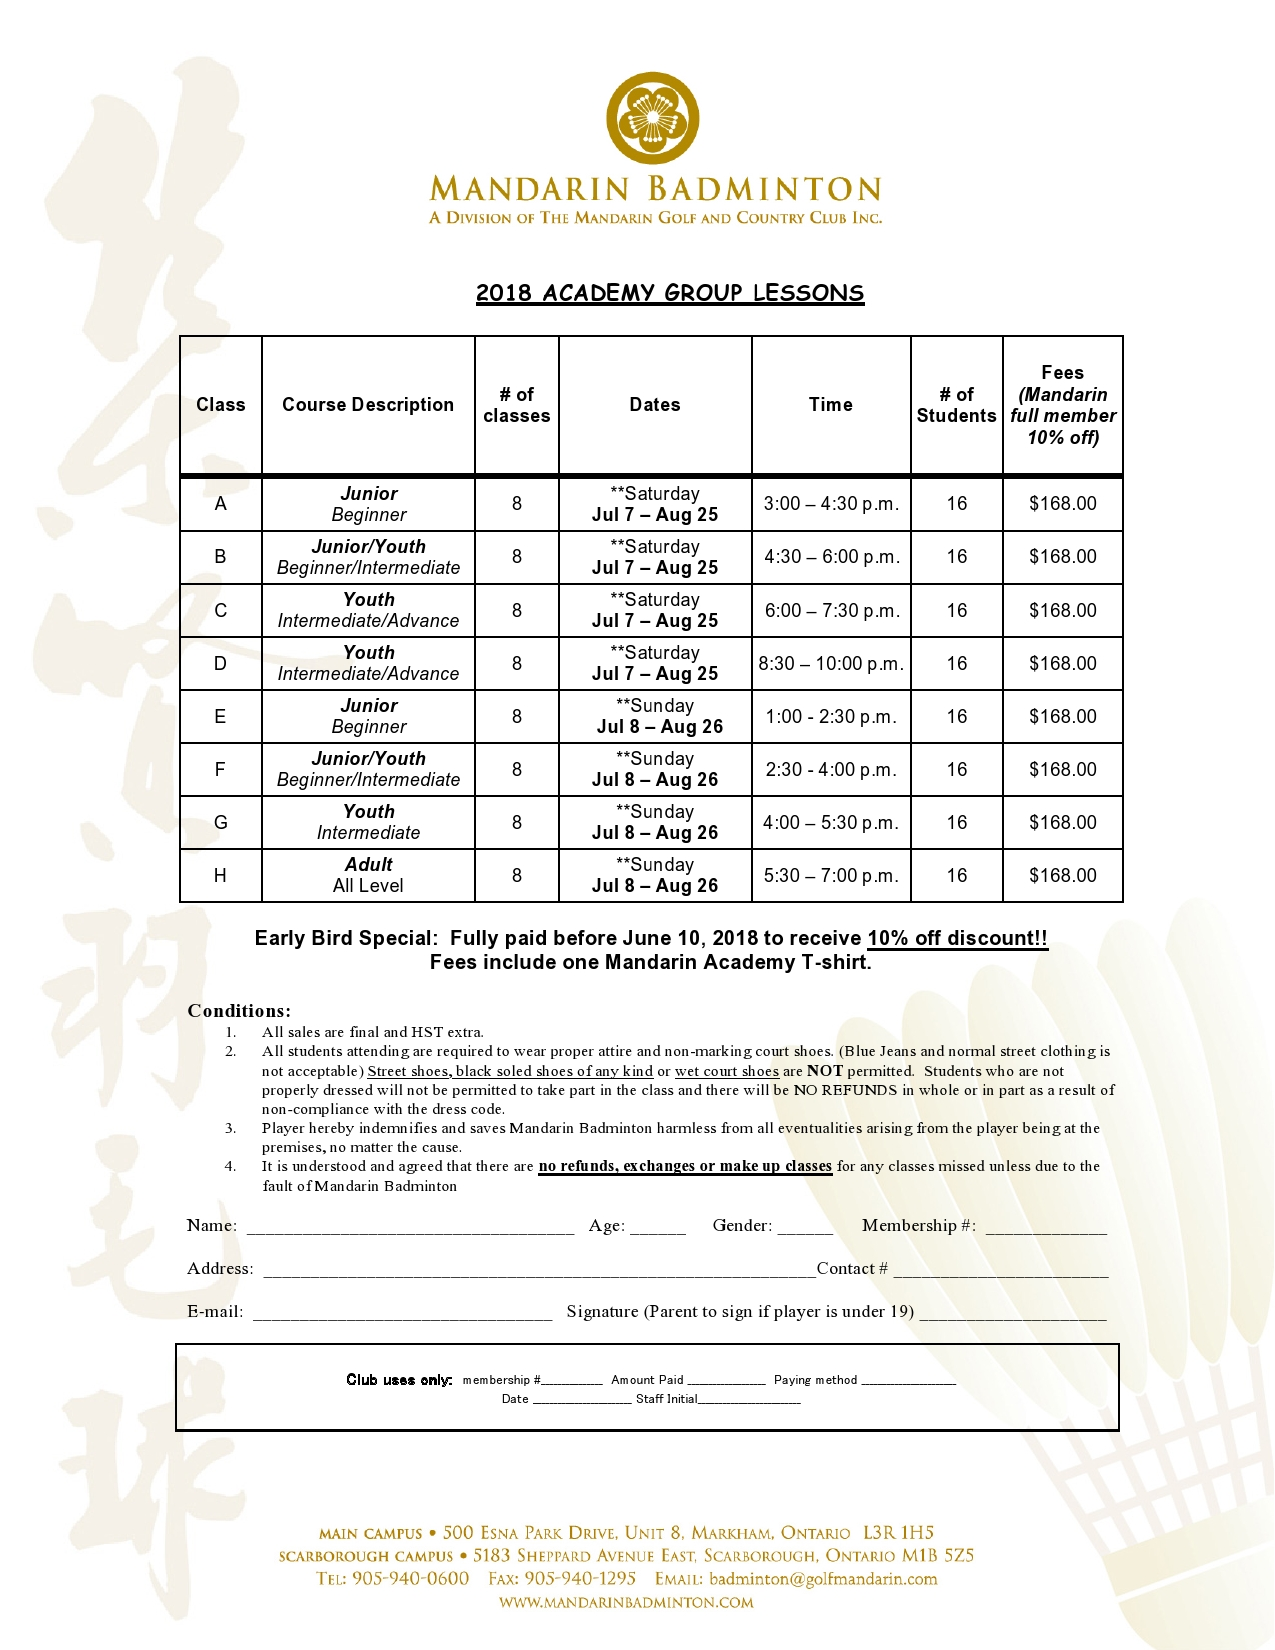 2018 Summer Group Lesson Registration Form